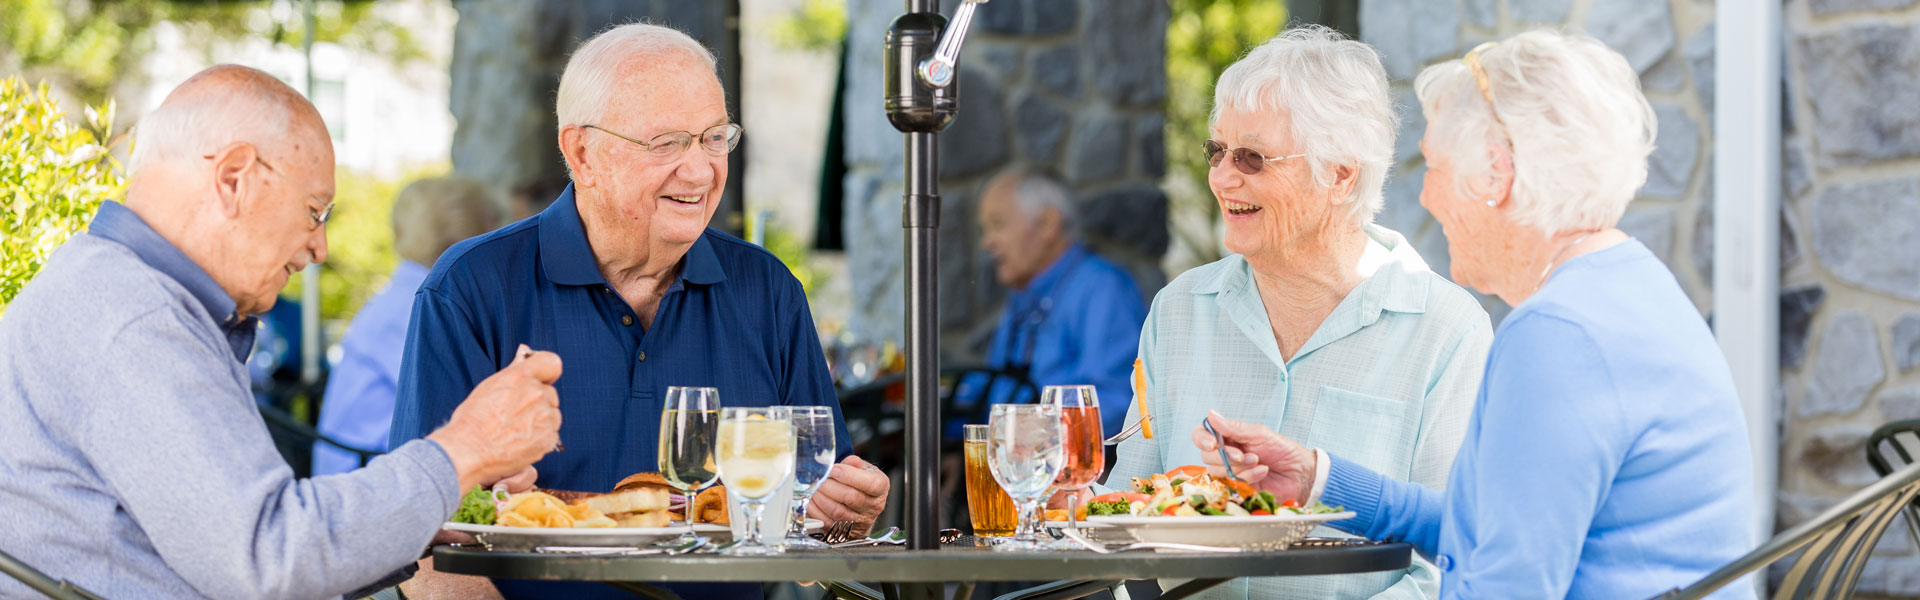 StoneRidge Independent Living Residents Eating Outdoors